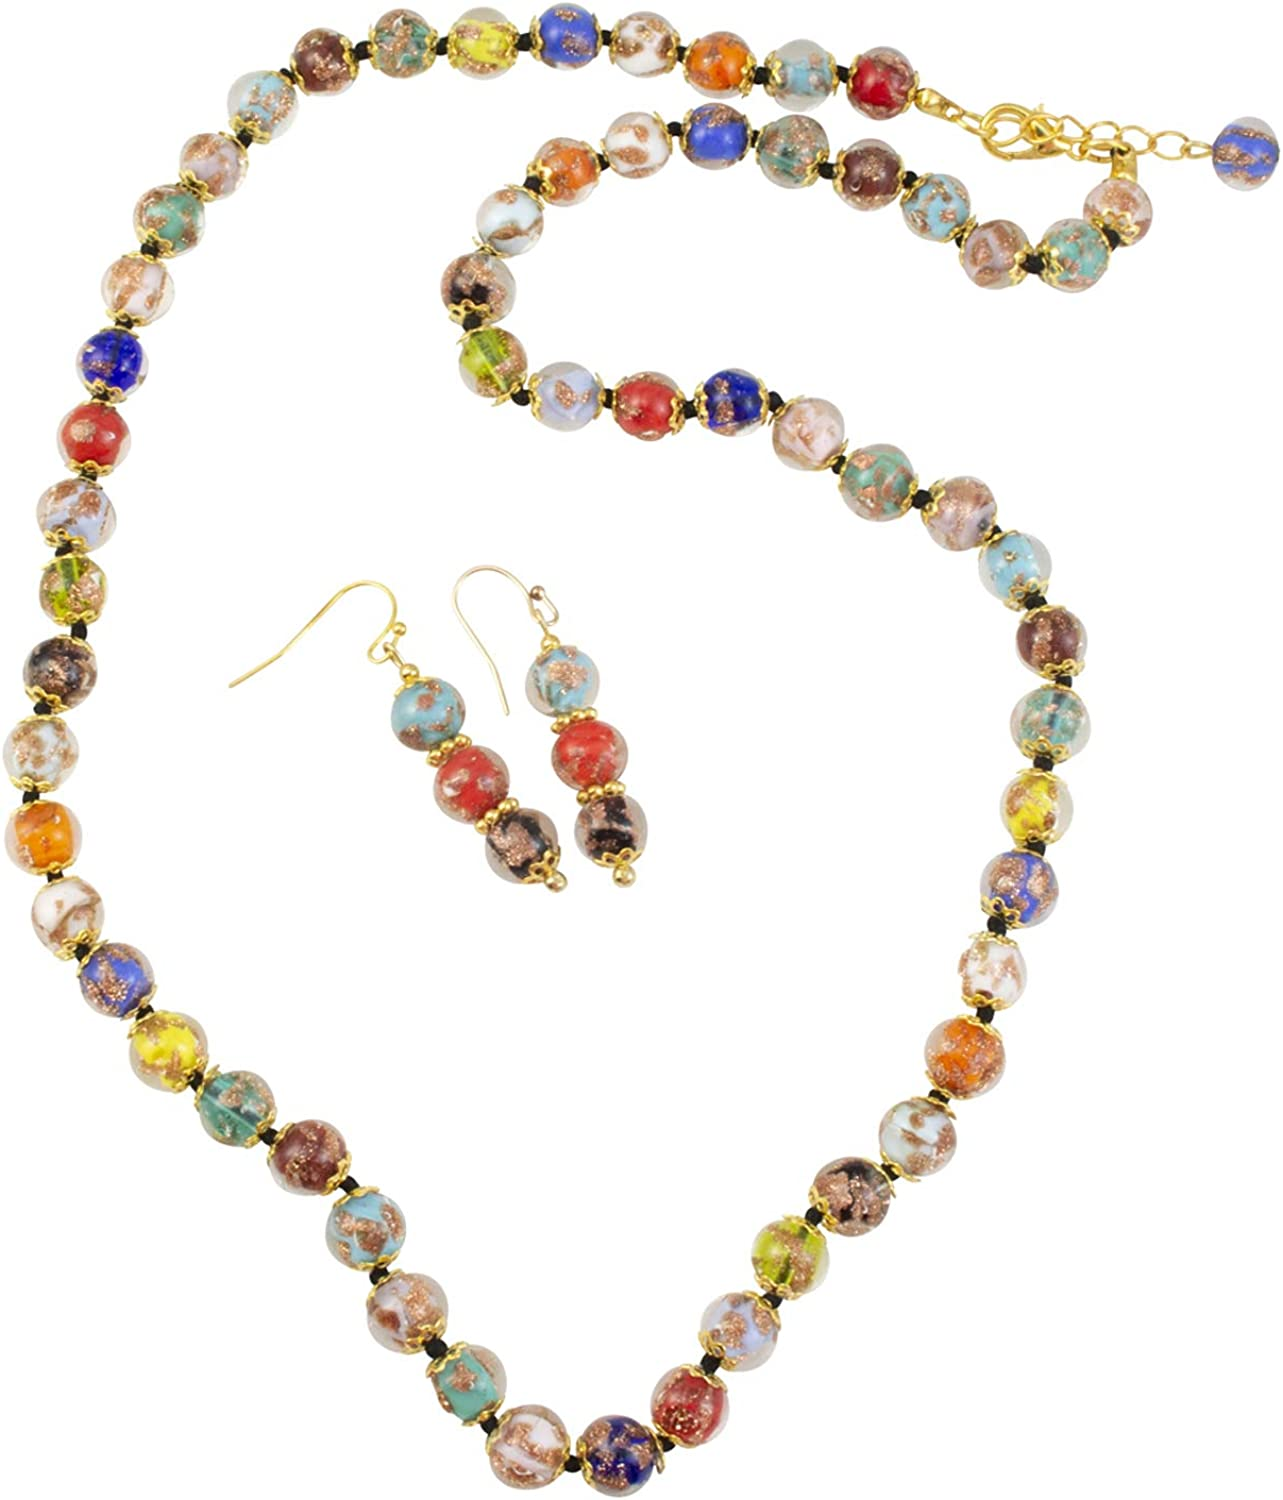 Genuine Venice Murano Sommerso Aventurina Glass Bead Long Strand Necklace and Earrings Set, Multi-Color